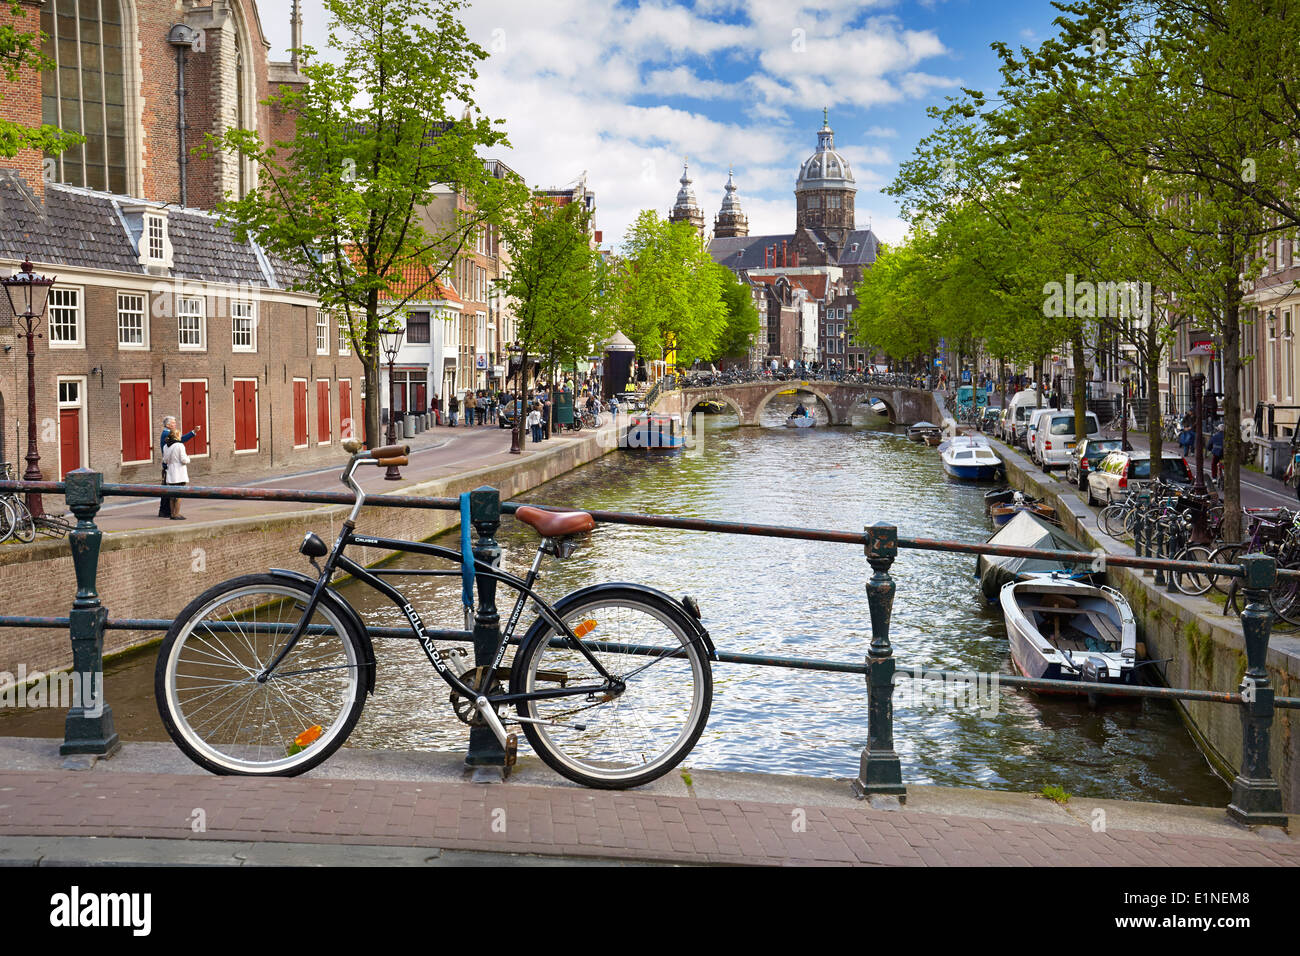 Bicycle on Amsterdam street, Holland Netherlands - Stock Image